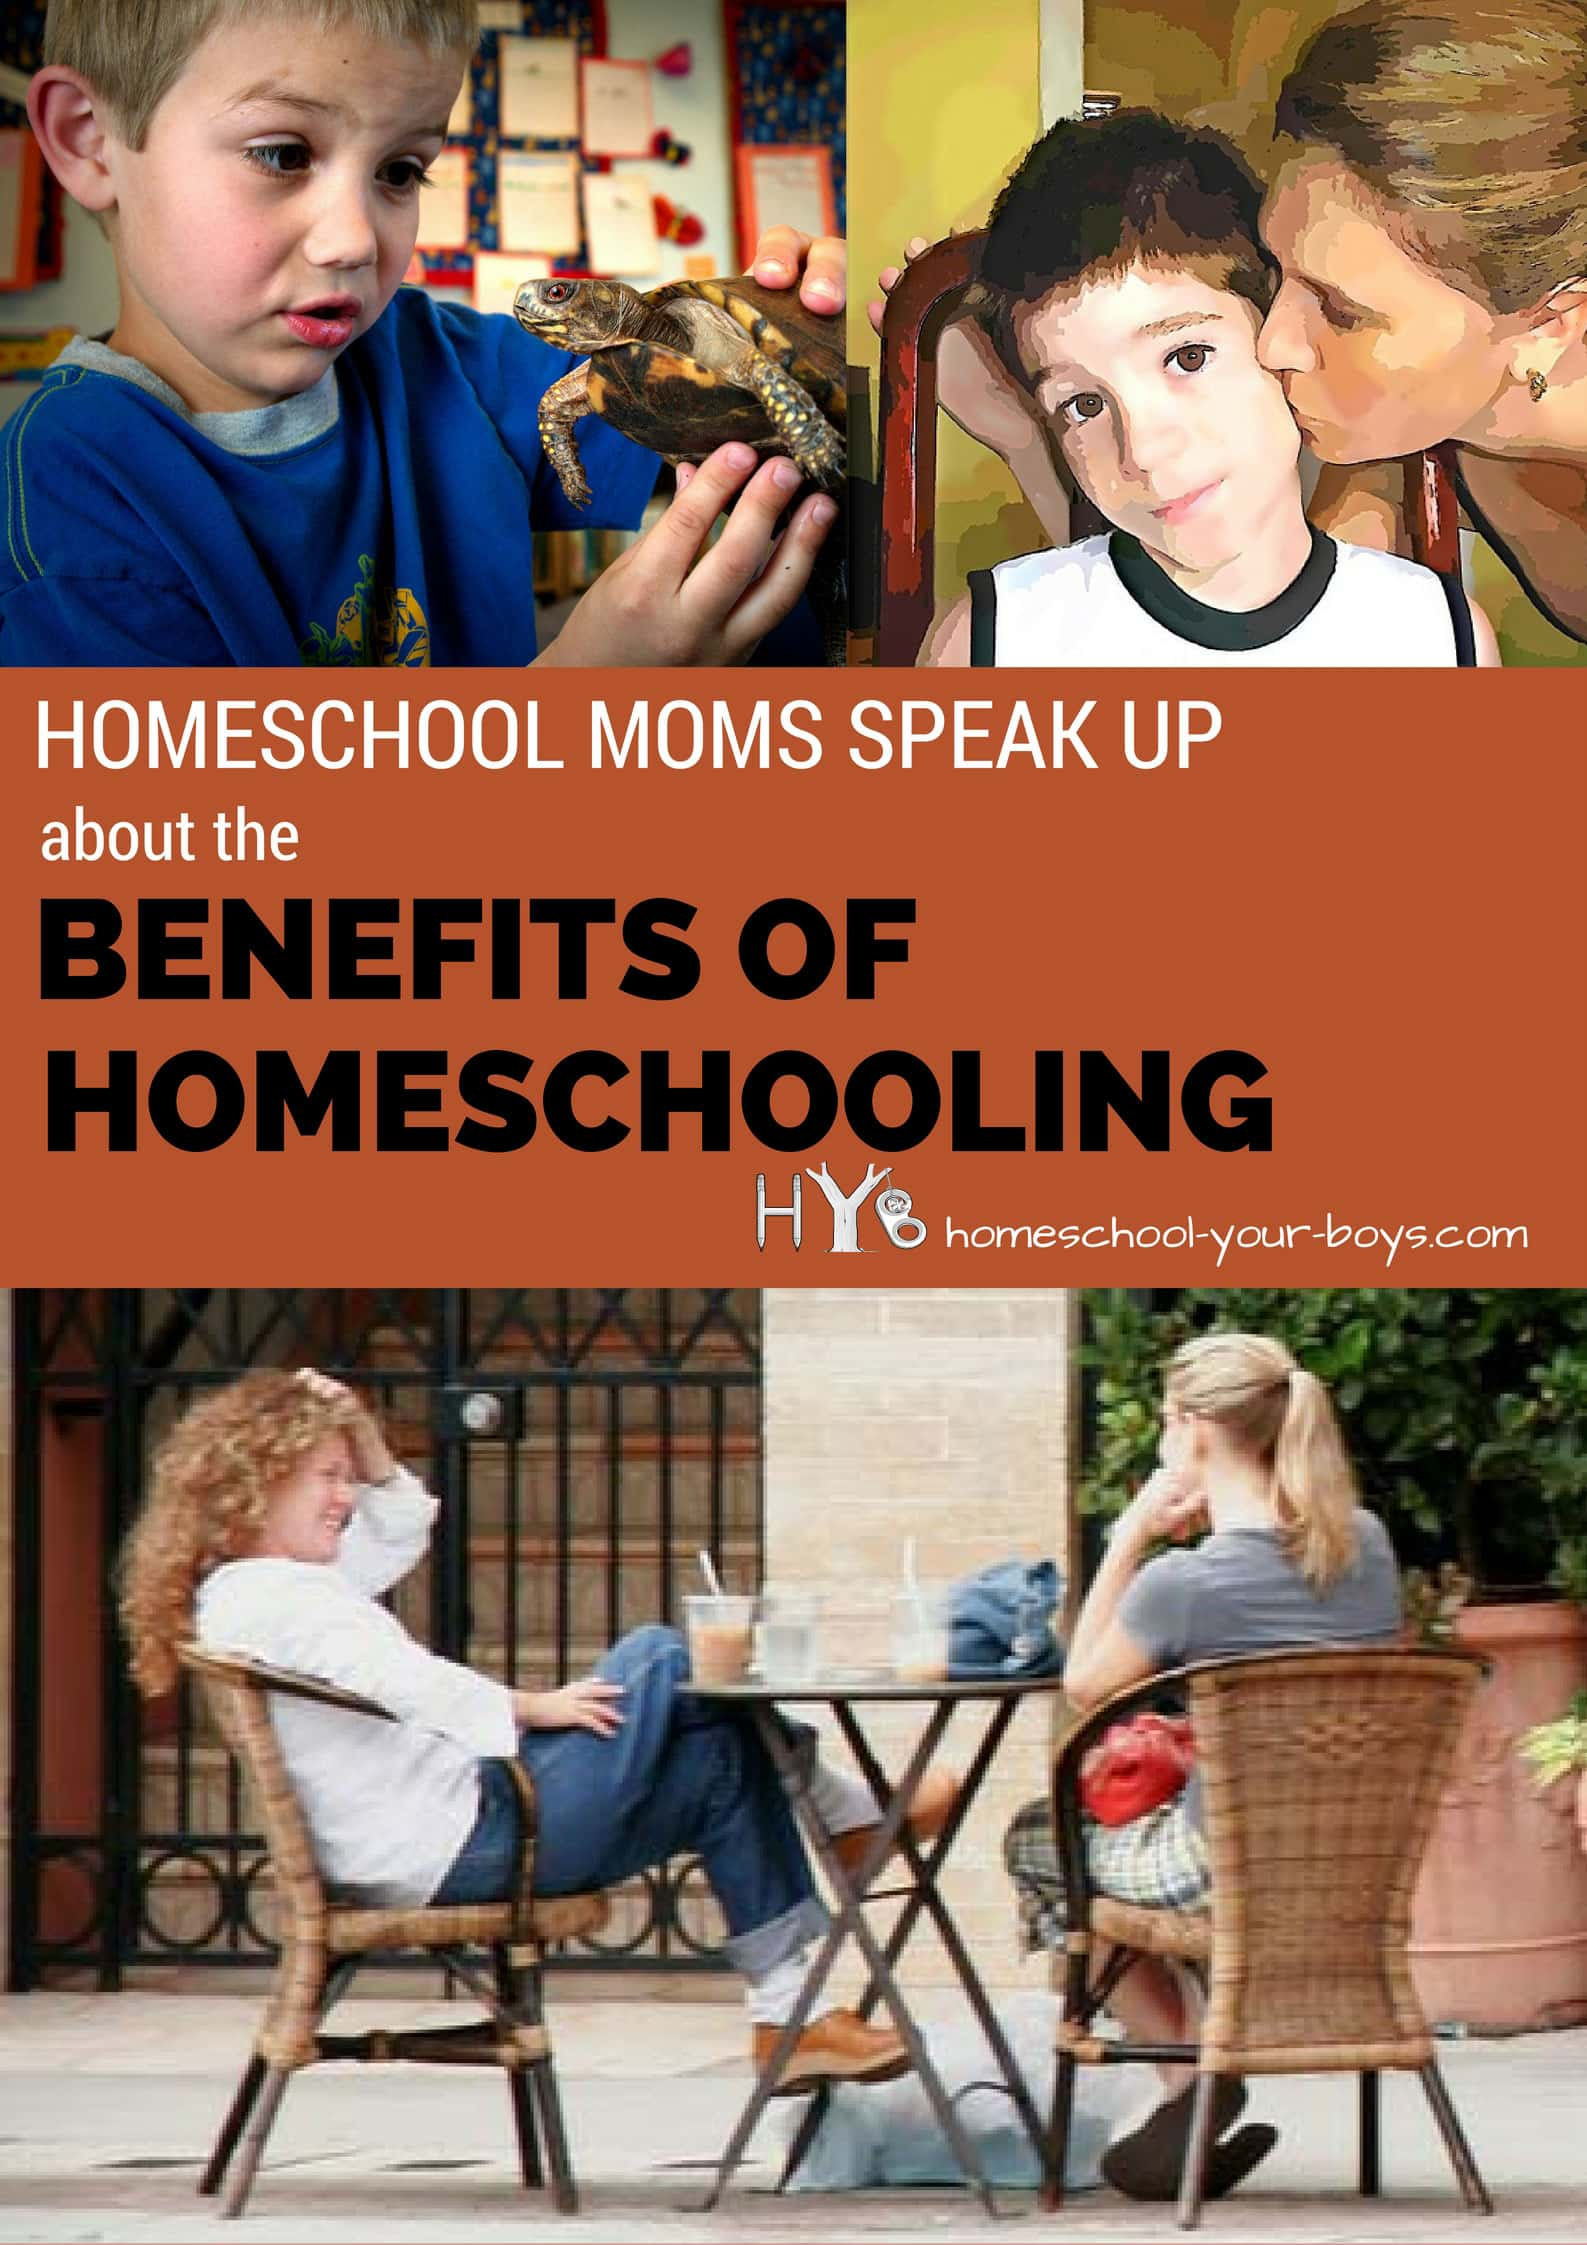 Homeschool Moms Speak Up About the Benefits of Homeschooling